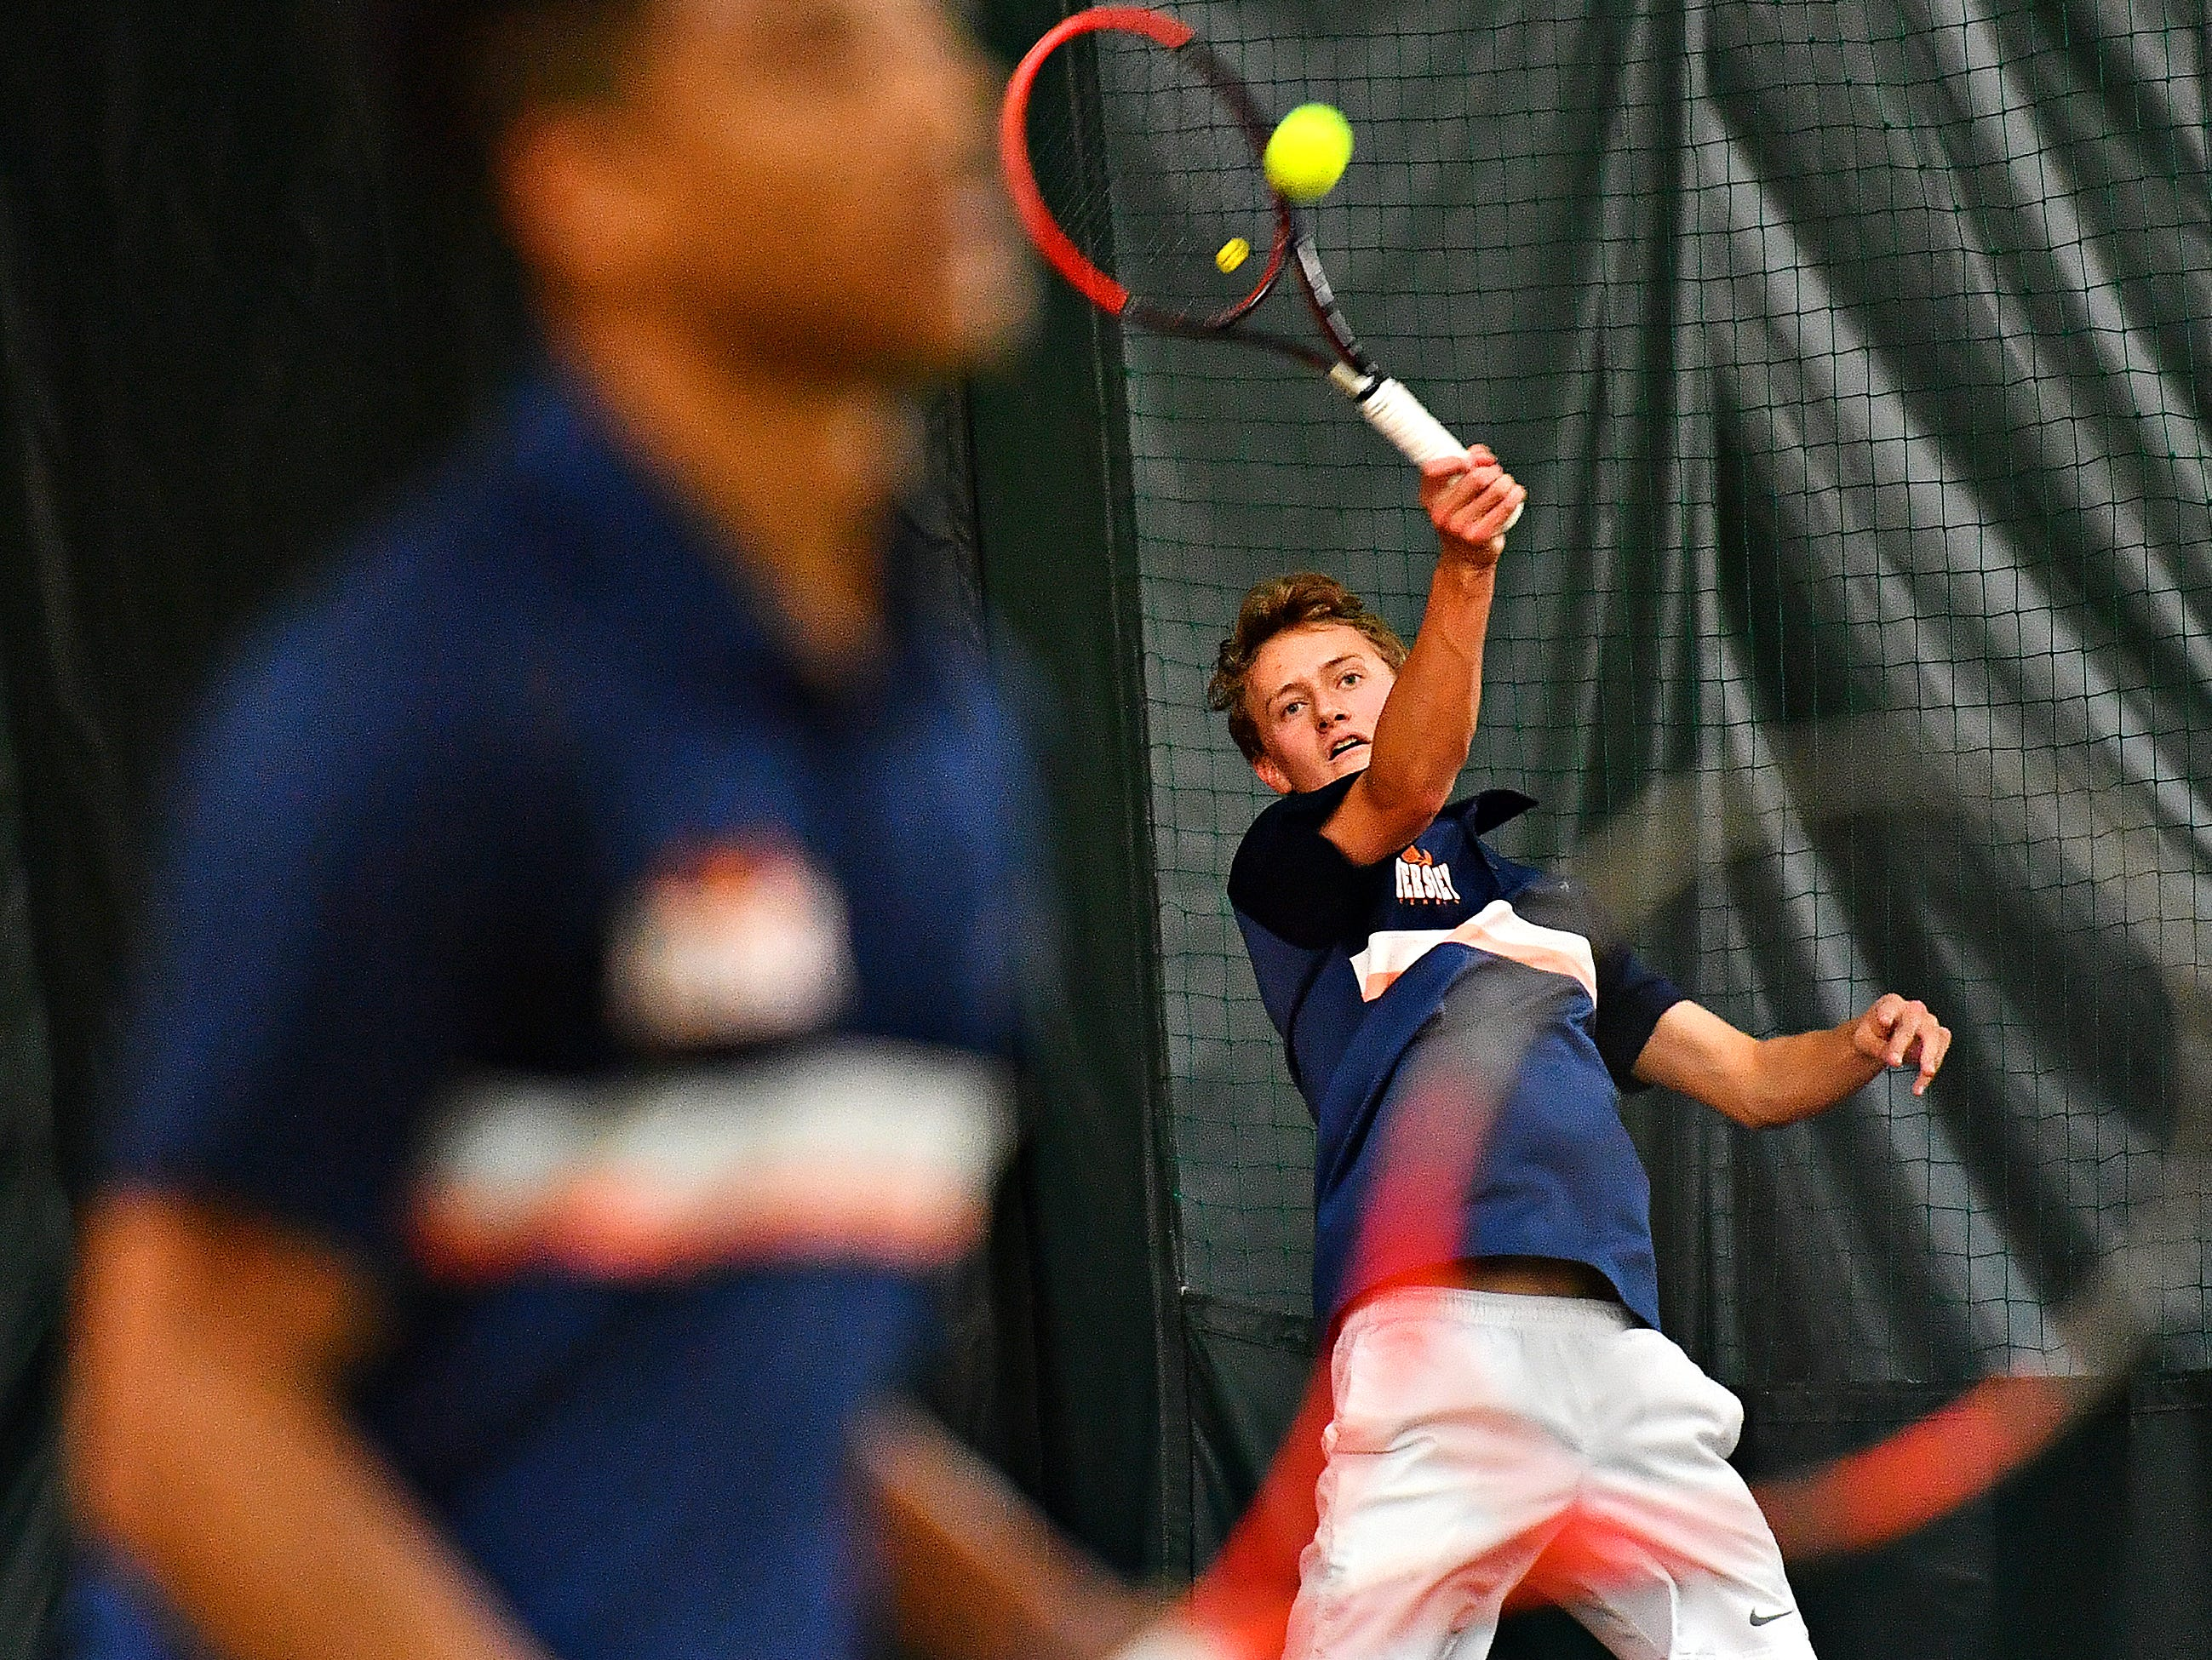 Hershey's Nate Shaw, back, returns the ball to Dallastown while teammate JT Mullins looks on during District III, Class 3-A boys' tennis team championship doubles action at Hershey Raquet Club in Hershey, Thursday, May 9, 2019. Hershey would win the match as well as the title. Dawn J. Sagert photo